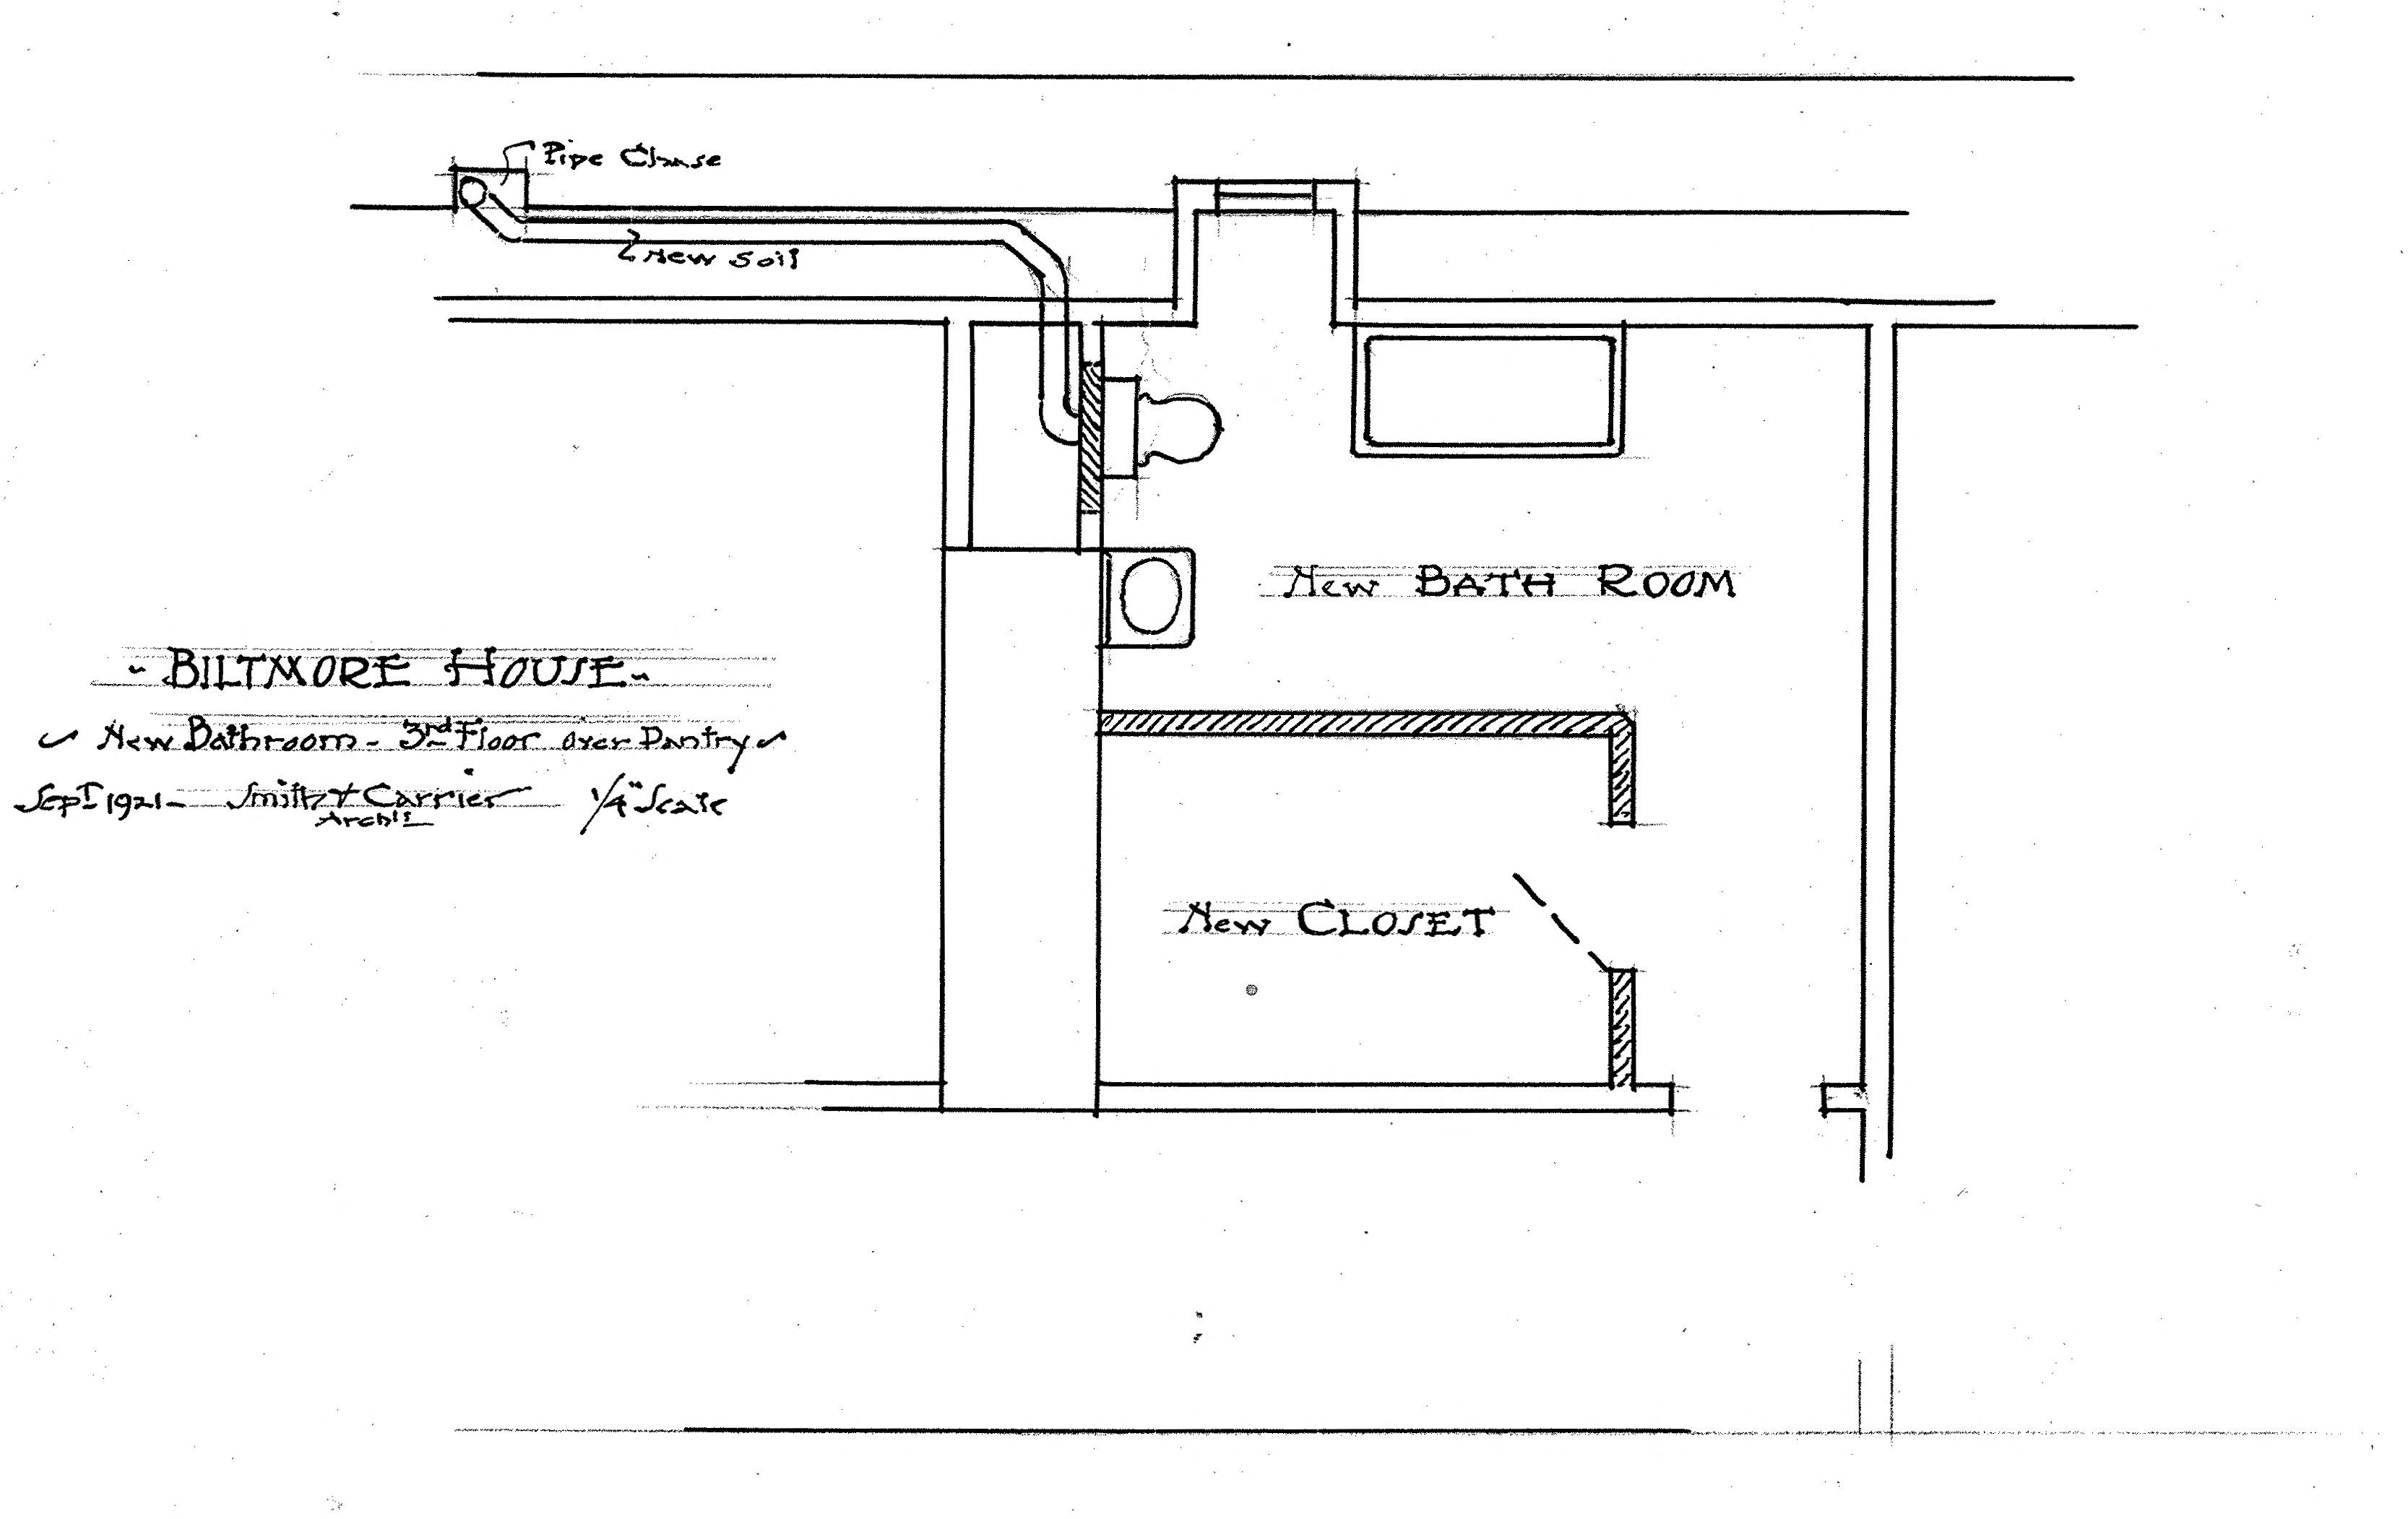 Biltmore House 2nd 1 2 Floor Bathroom Closet Floorplan On Half Floor Above Edith Vanderbilt S Maids Rooms Door Into This Can Be Seen From Hallway Just O